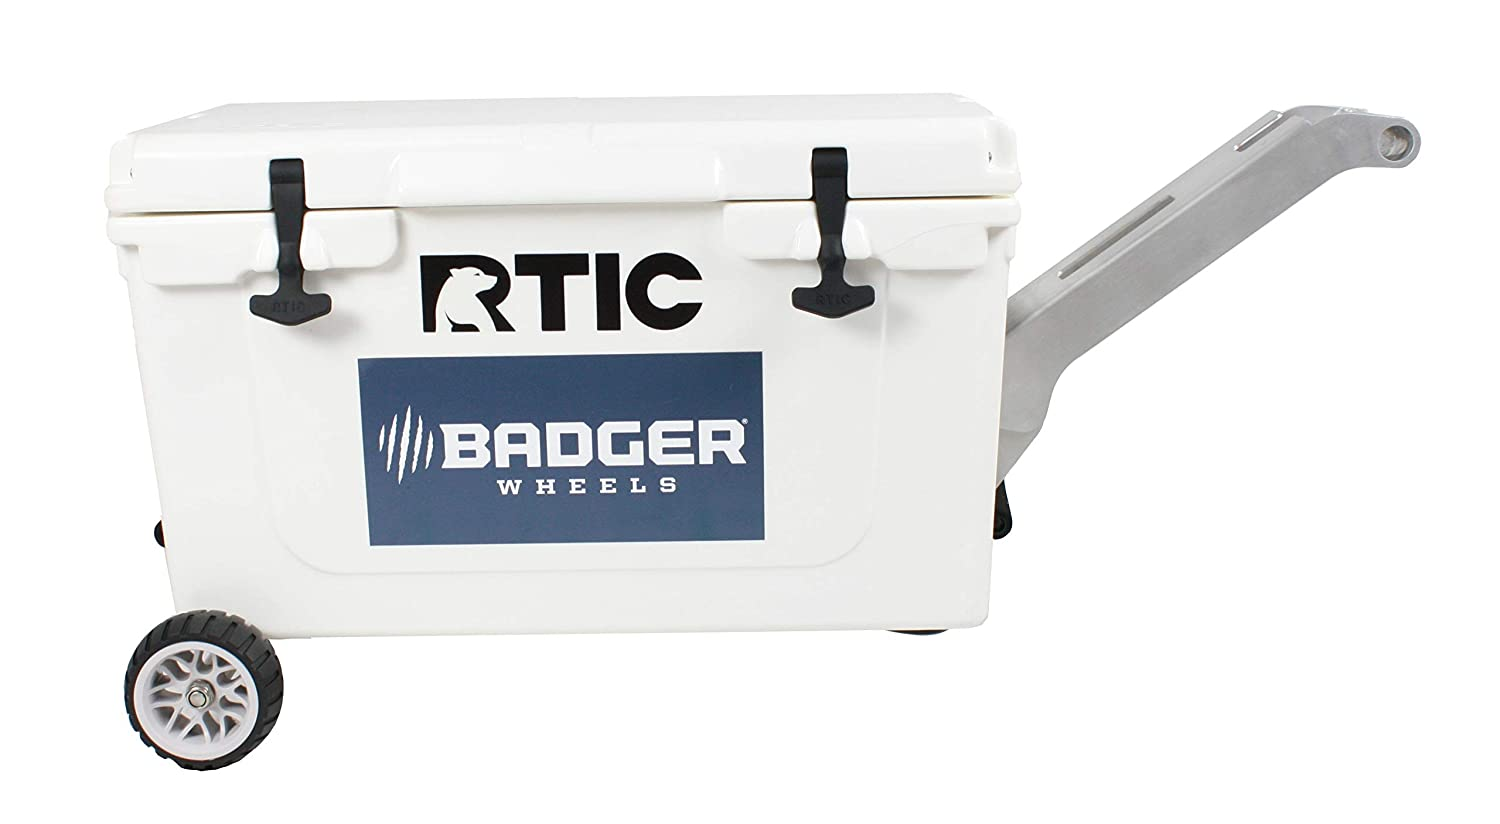 Handle//Stand Fits RTIC 45 and 65 Badger Wheels RTIC Original Wheel Kit Single Axle